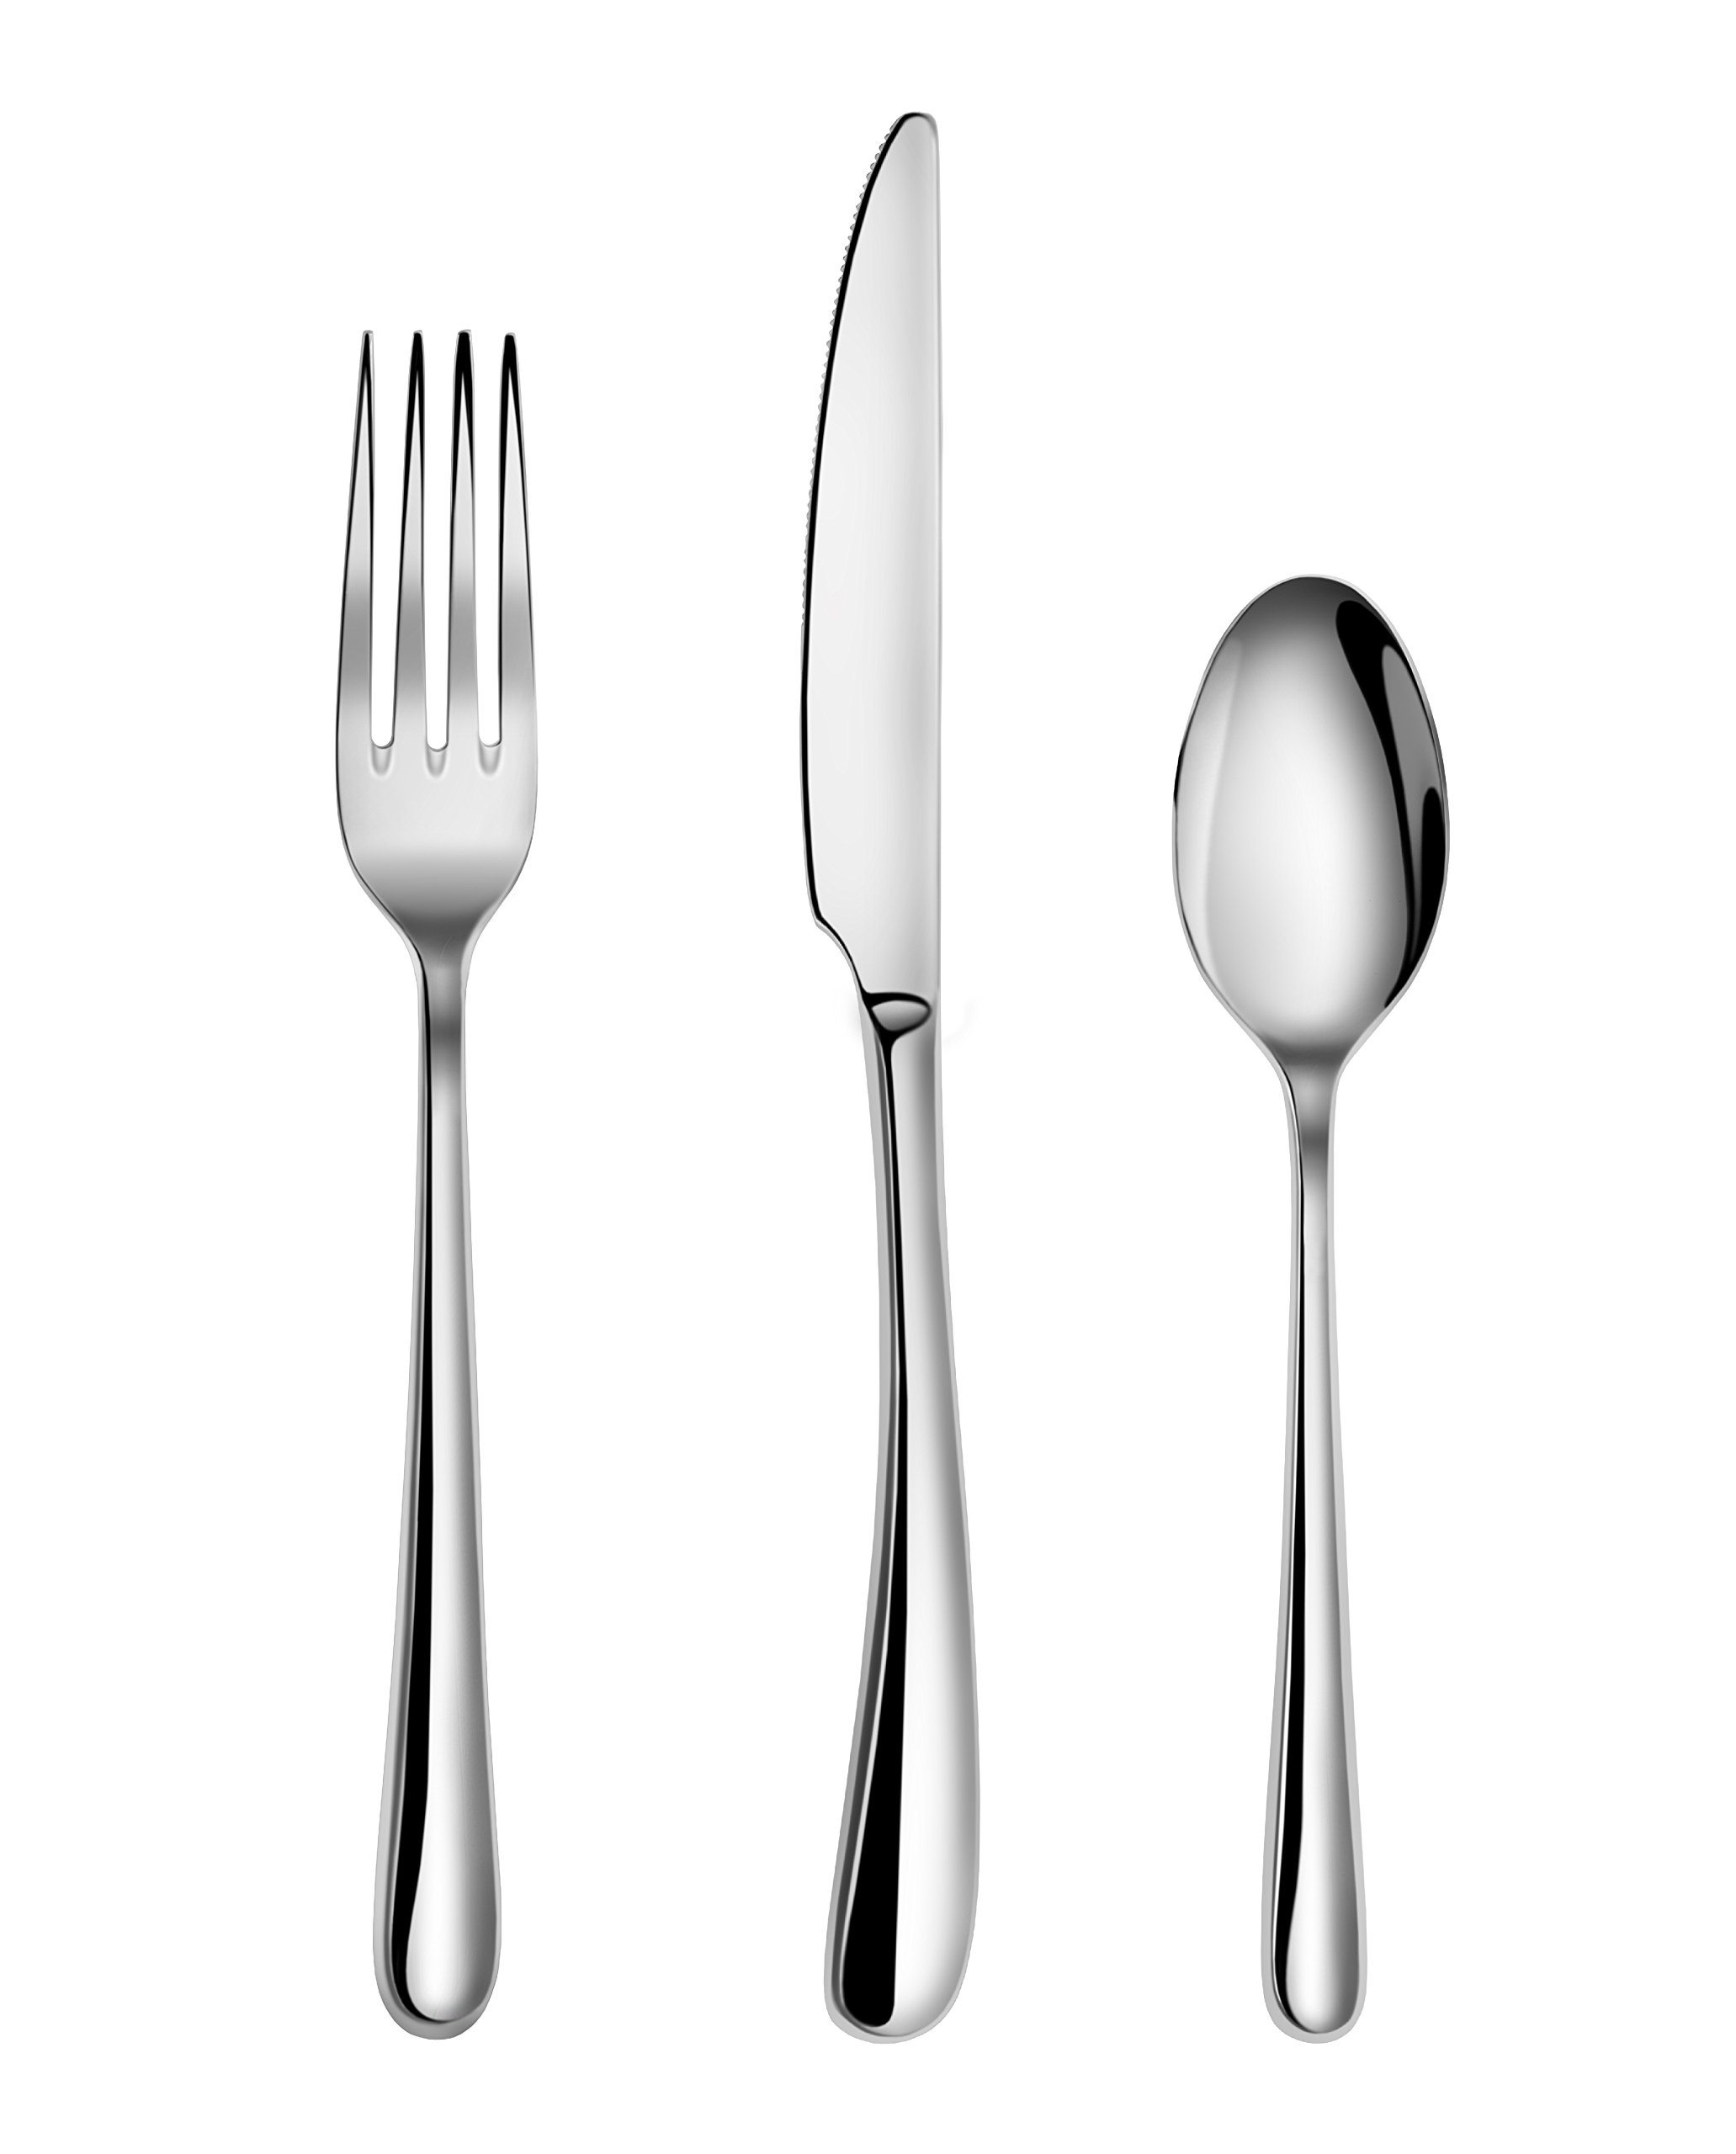 Artaste 56518 Rain II Forged 18/10 Stainless Steel Flatware 36-Piece Set, Service for 12